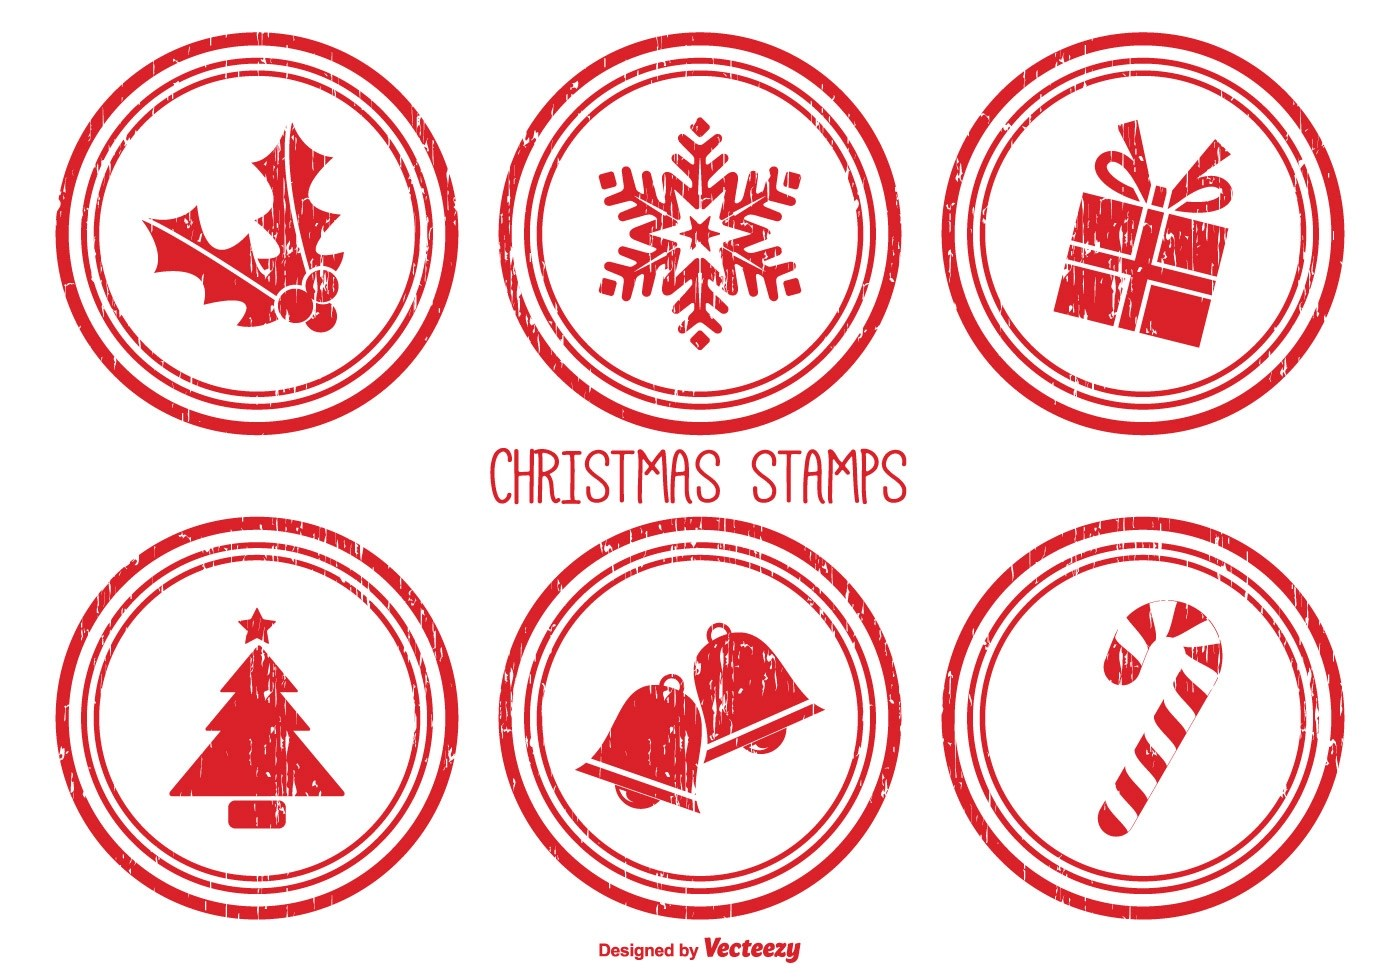 Distressed Christmas Stamps Download Free Vector Art